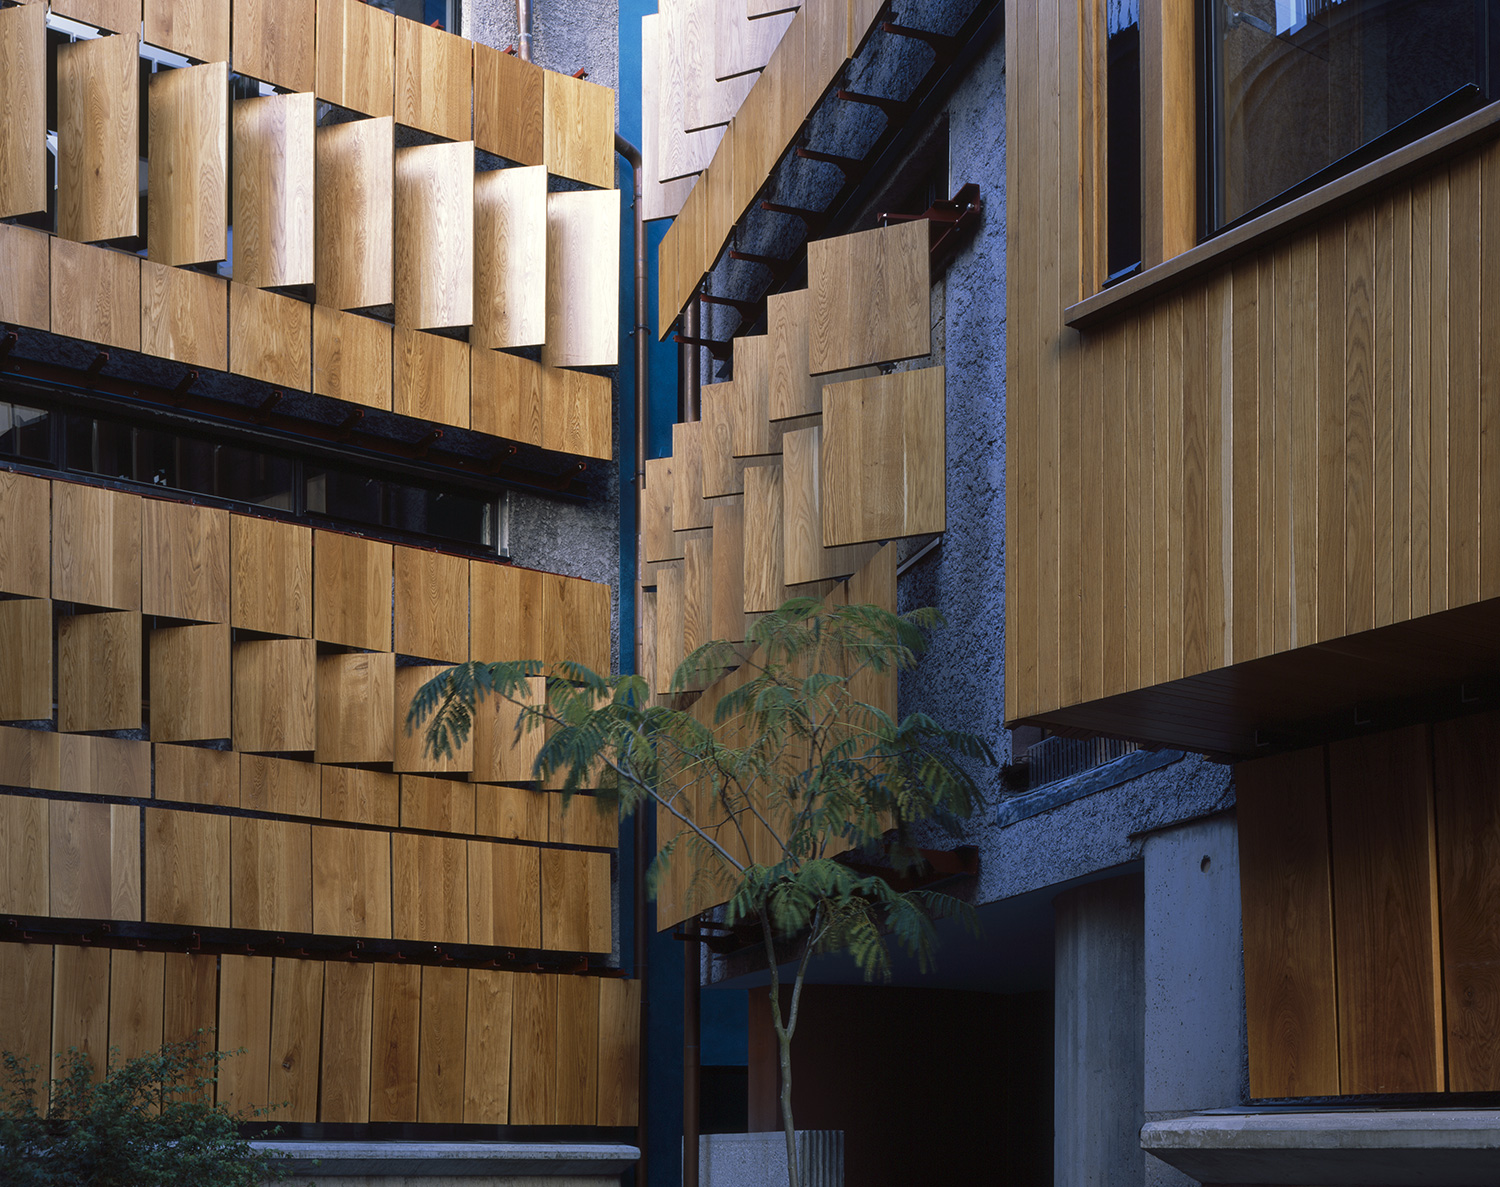 3.-Walmer-Yard-by-Peter-Salter_Courtyard-detail-showing-staggered-panels-of-timber-shutters_Photography--Helene-Binet_1500.jpg